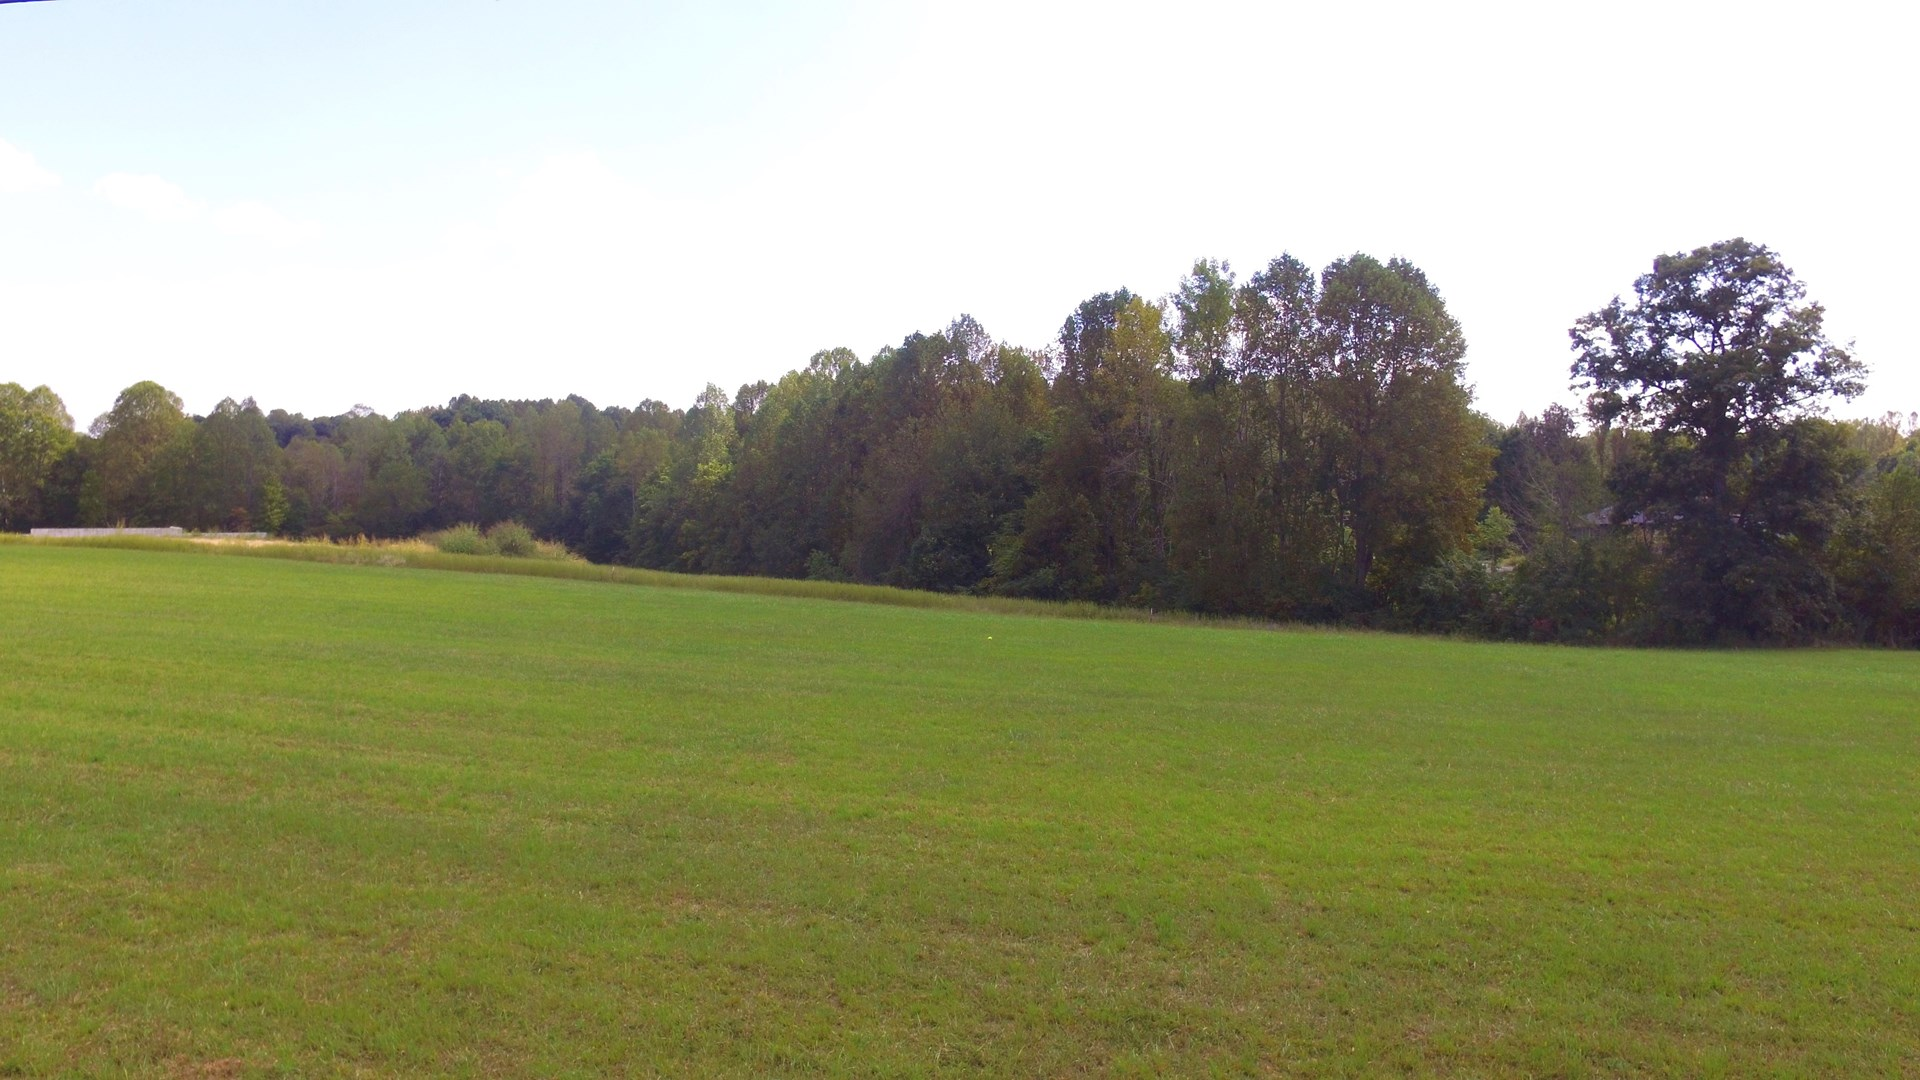 BUILDING LOTS-UTILITIES AVAILABLE-LEVEL ACREAGE-LIBERTY, KY.